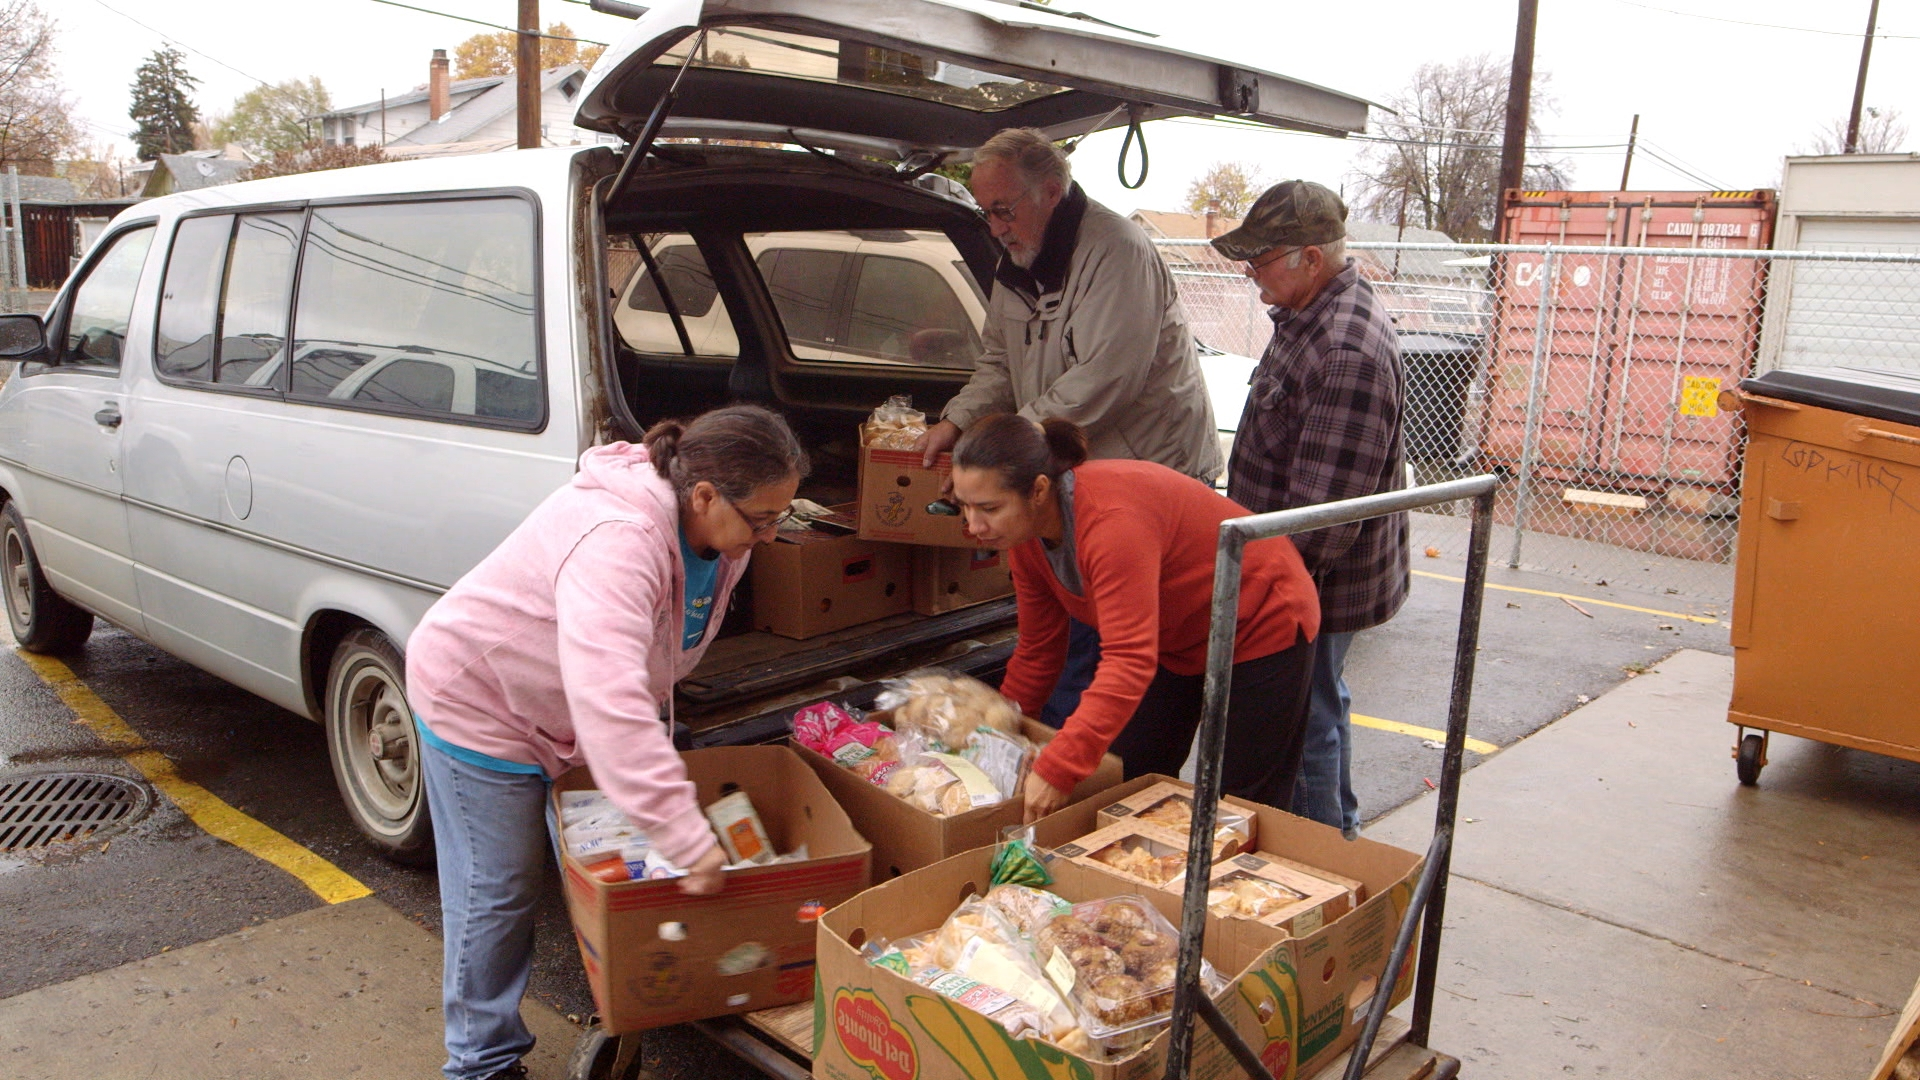 Volunteers unloading a truck at Toppenish Food Bank